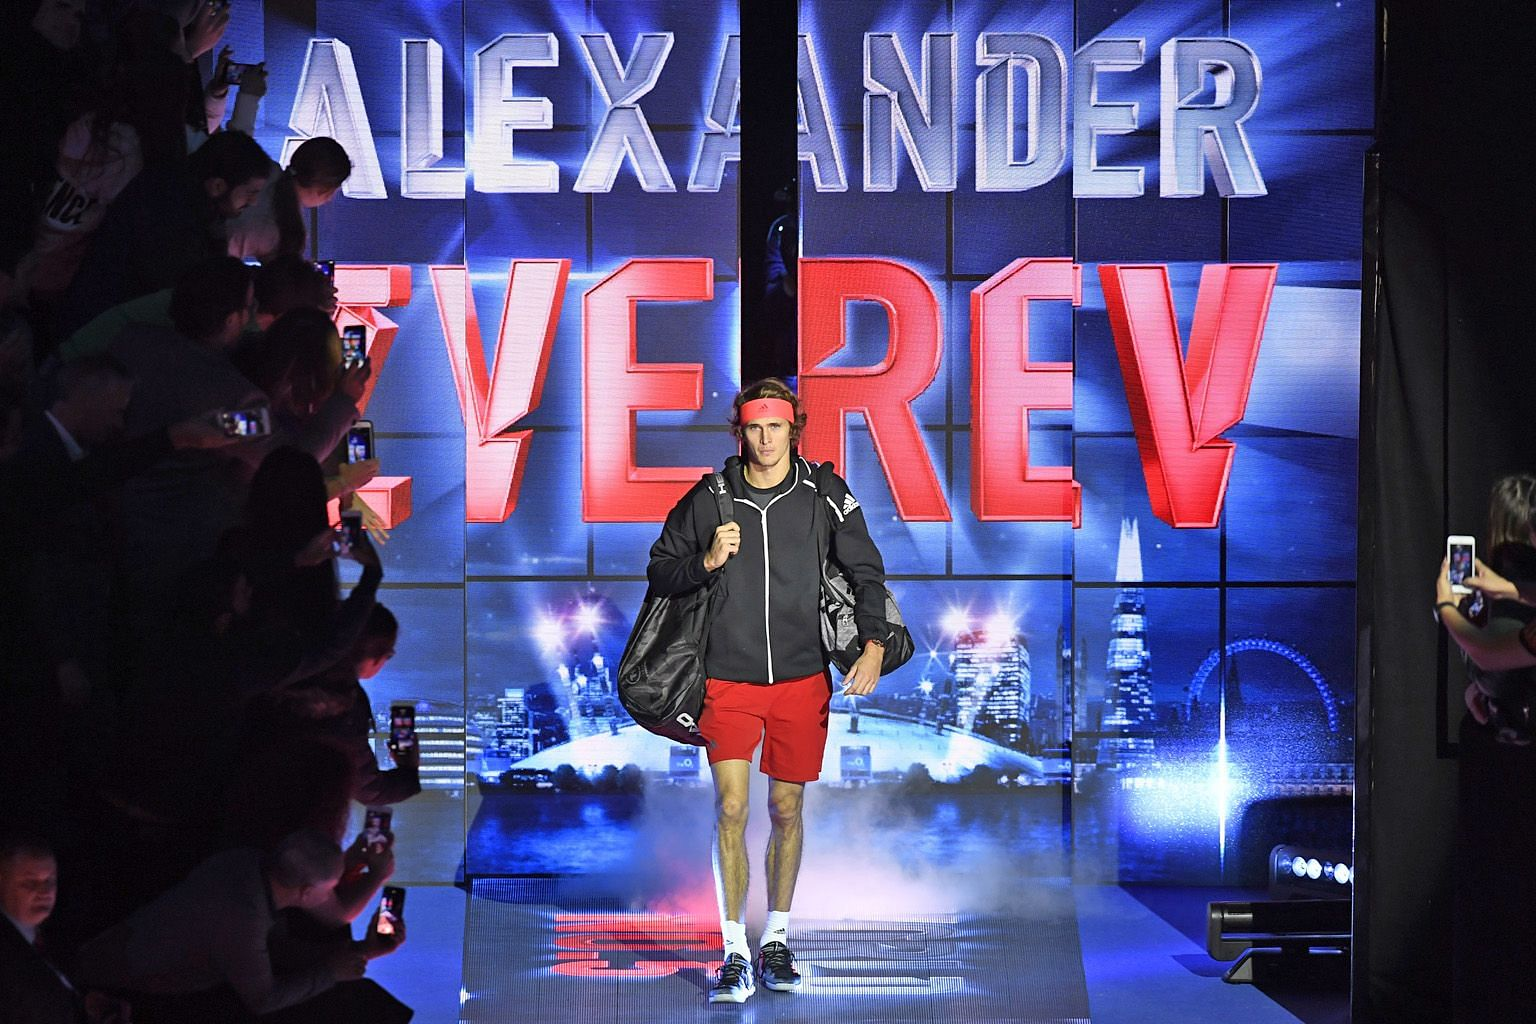 Alexander Zverev making his entrance for the final, where he beat world No. 1 Novak Djokovic to win the ATP Finals in London this month. The 21-year-old German is likely to be in the elite field of eight to strut their stuff here from 2021 should Sin